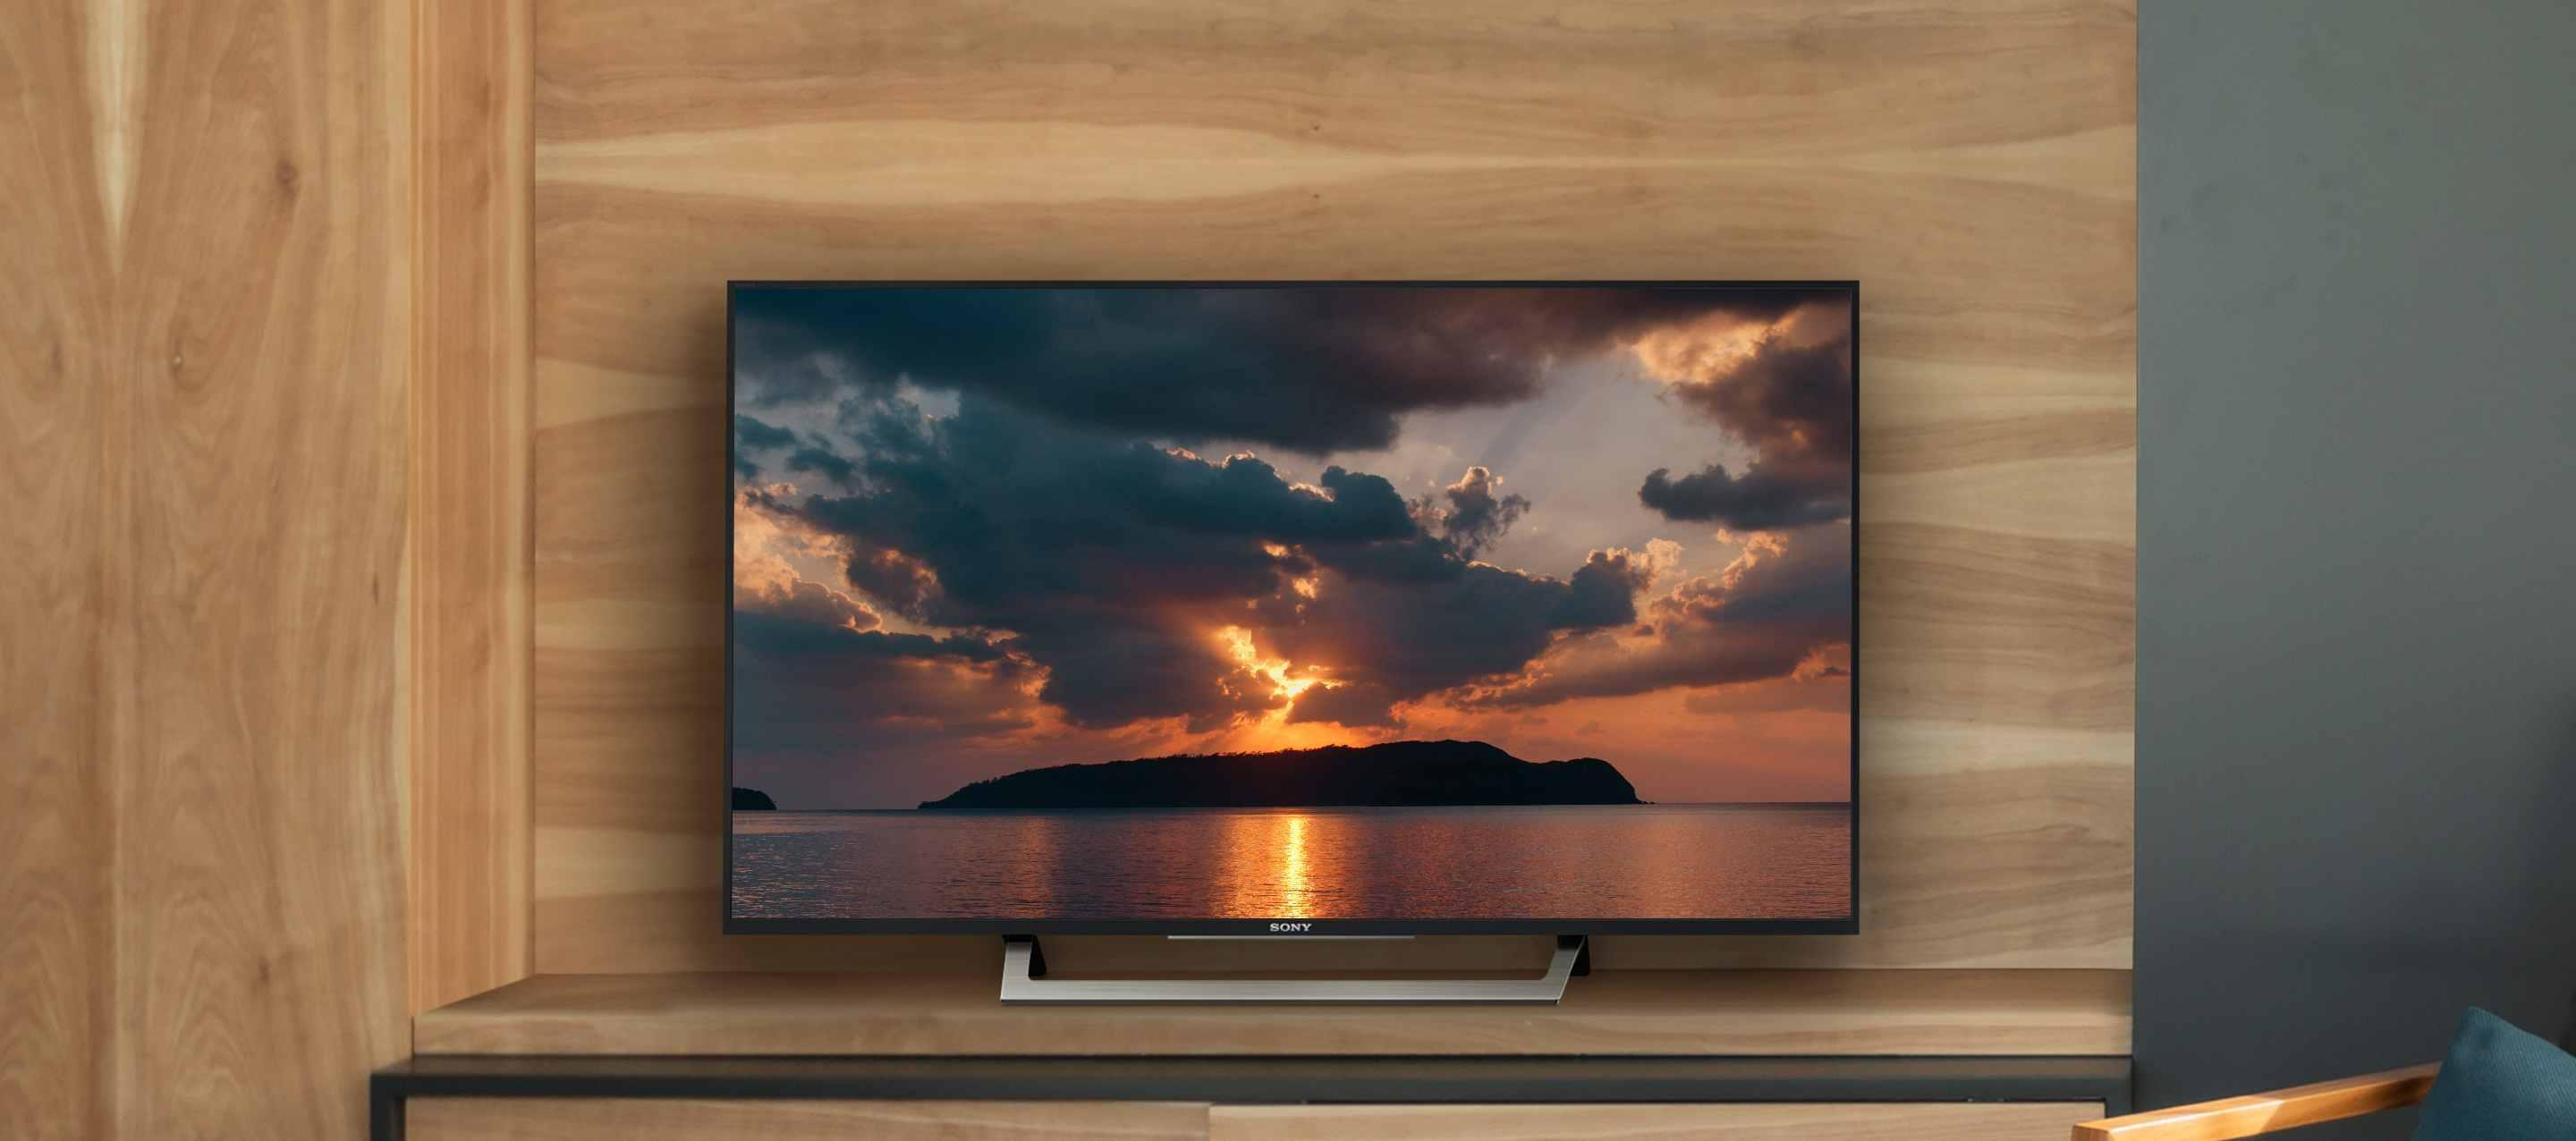 a picture of a sony 43 inch tv on a wooden desk